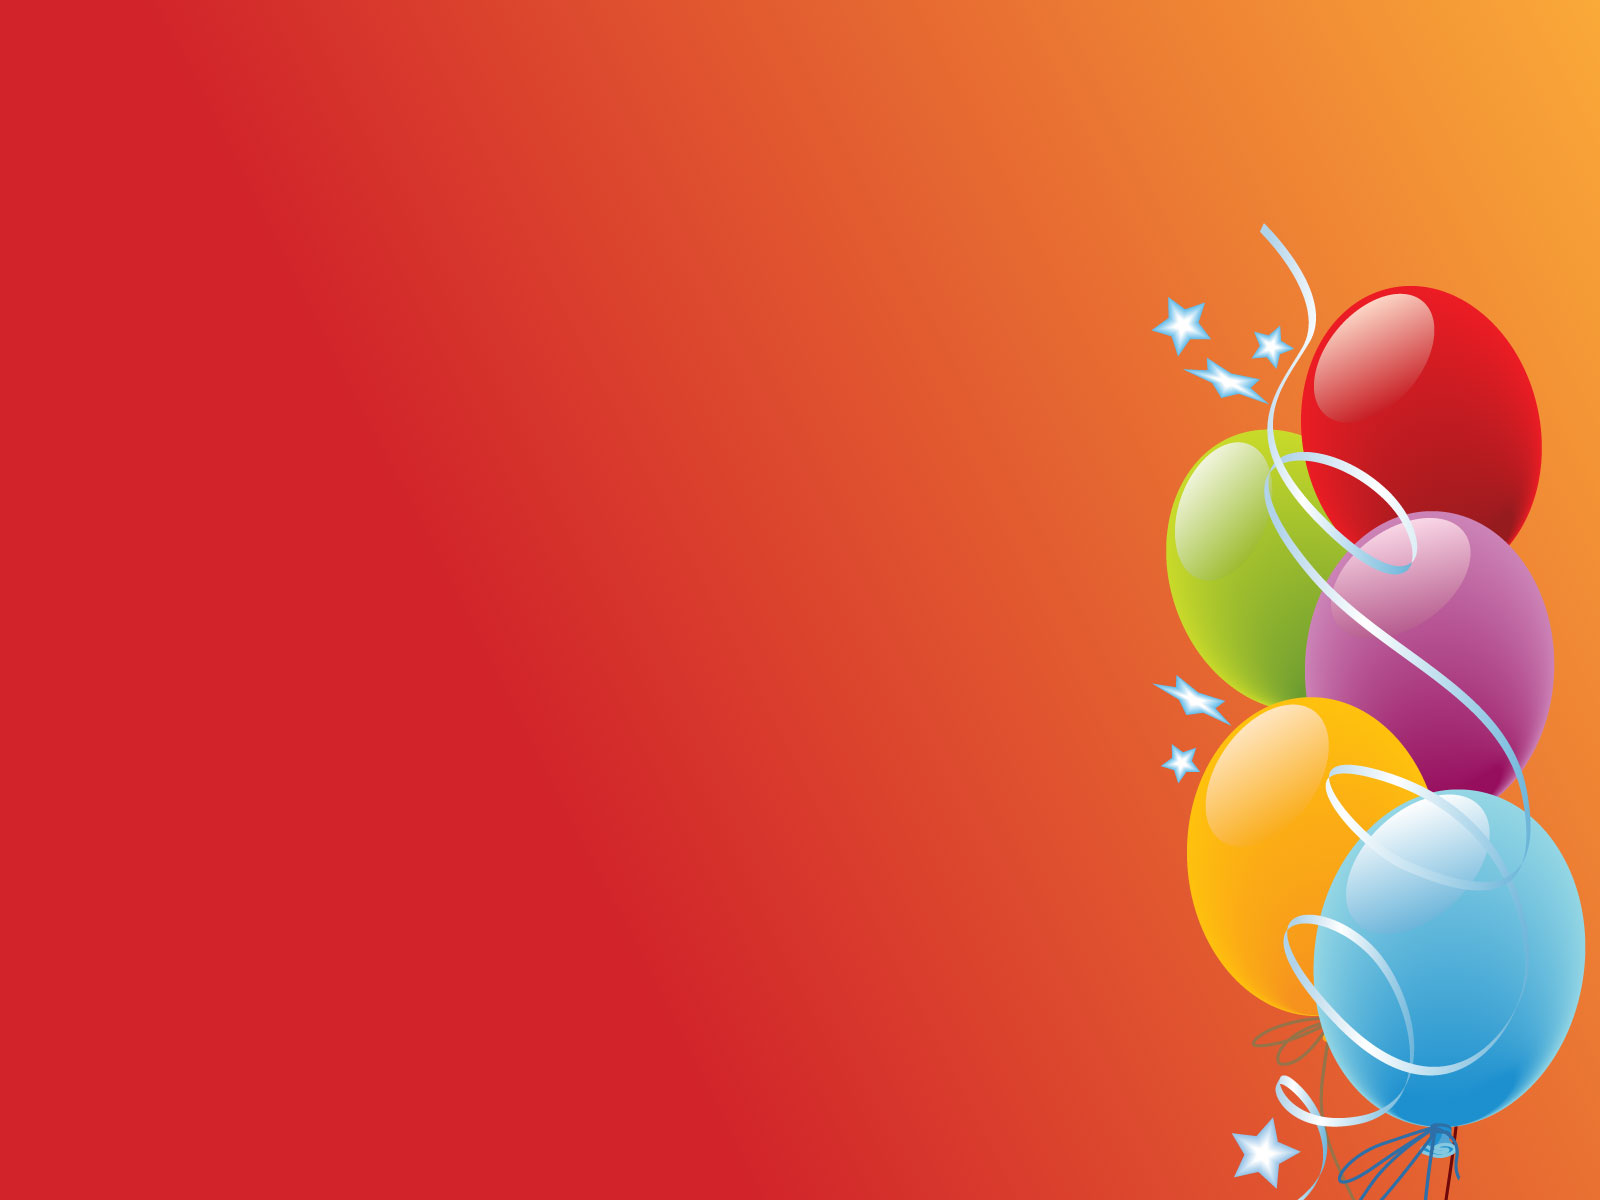 bday background ; bday%2520background%2520wallpaper%2520;%2520017d9edd6e835250fbdccc010419b425_1000-images-about-backgrounds-balloons-clipart-birthday-pictures-background_1600-1200